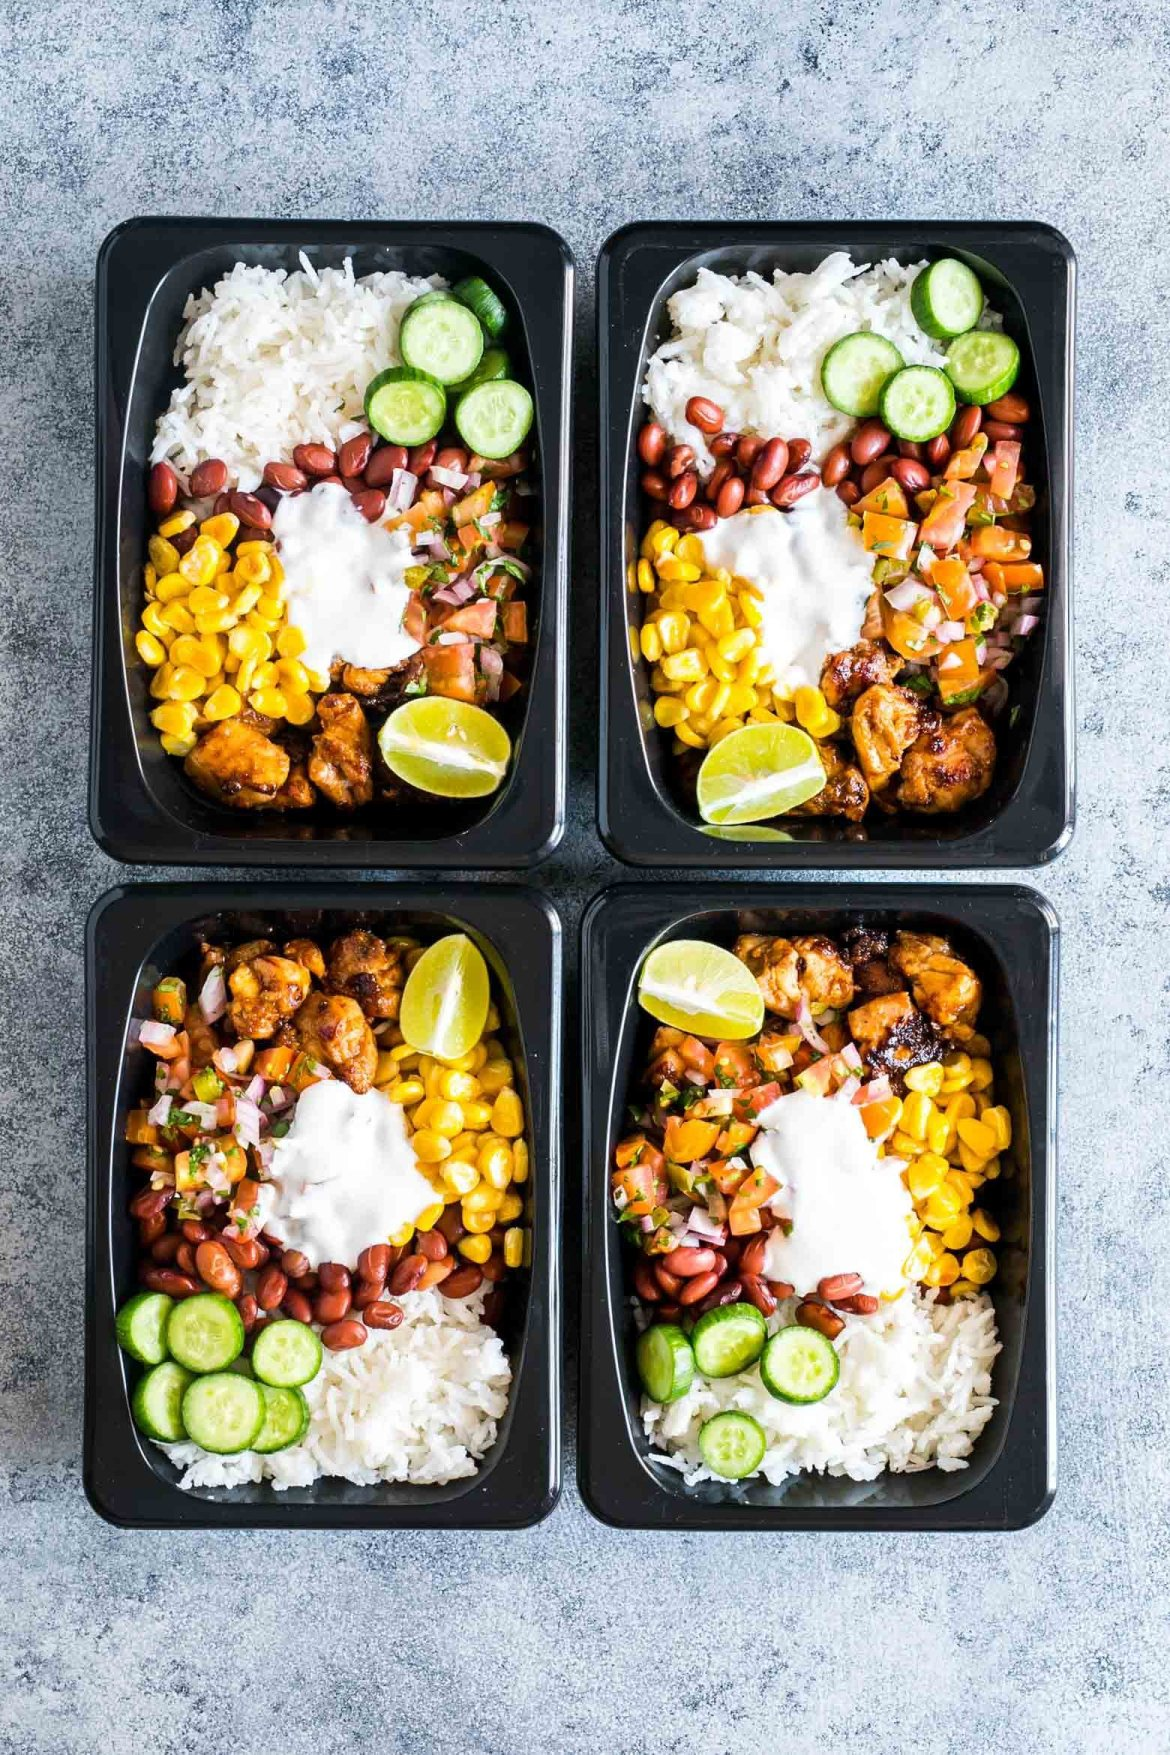 10 Meal Prep Ideas for the Week That Are Healthy & Delicious